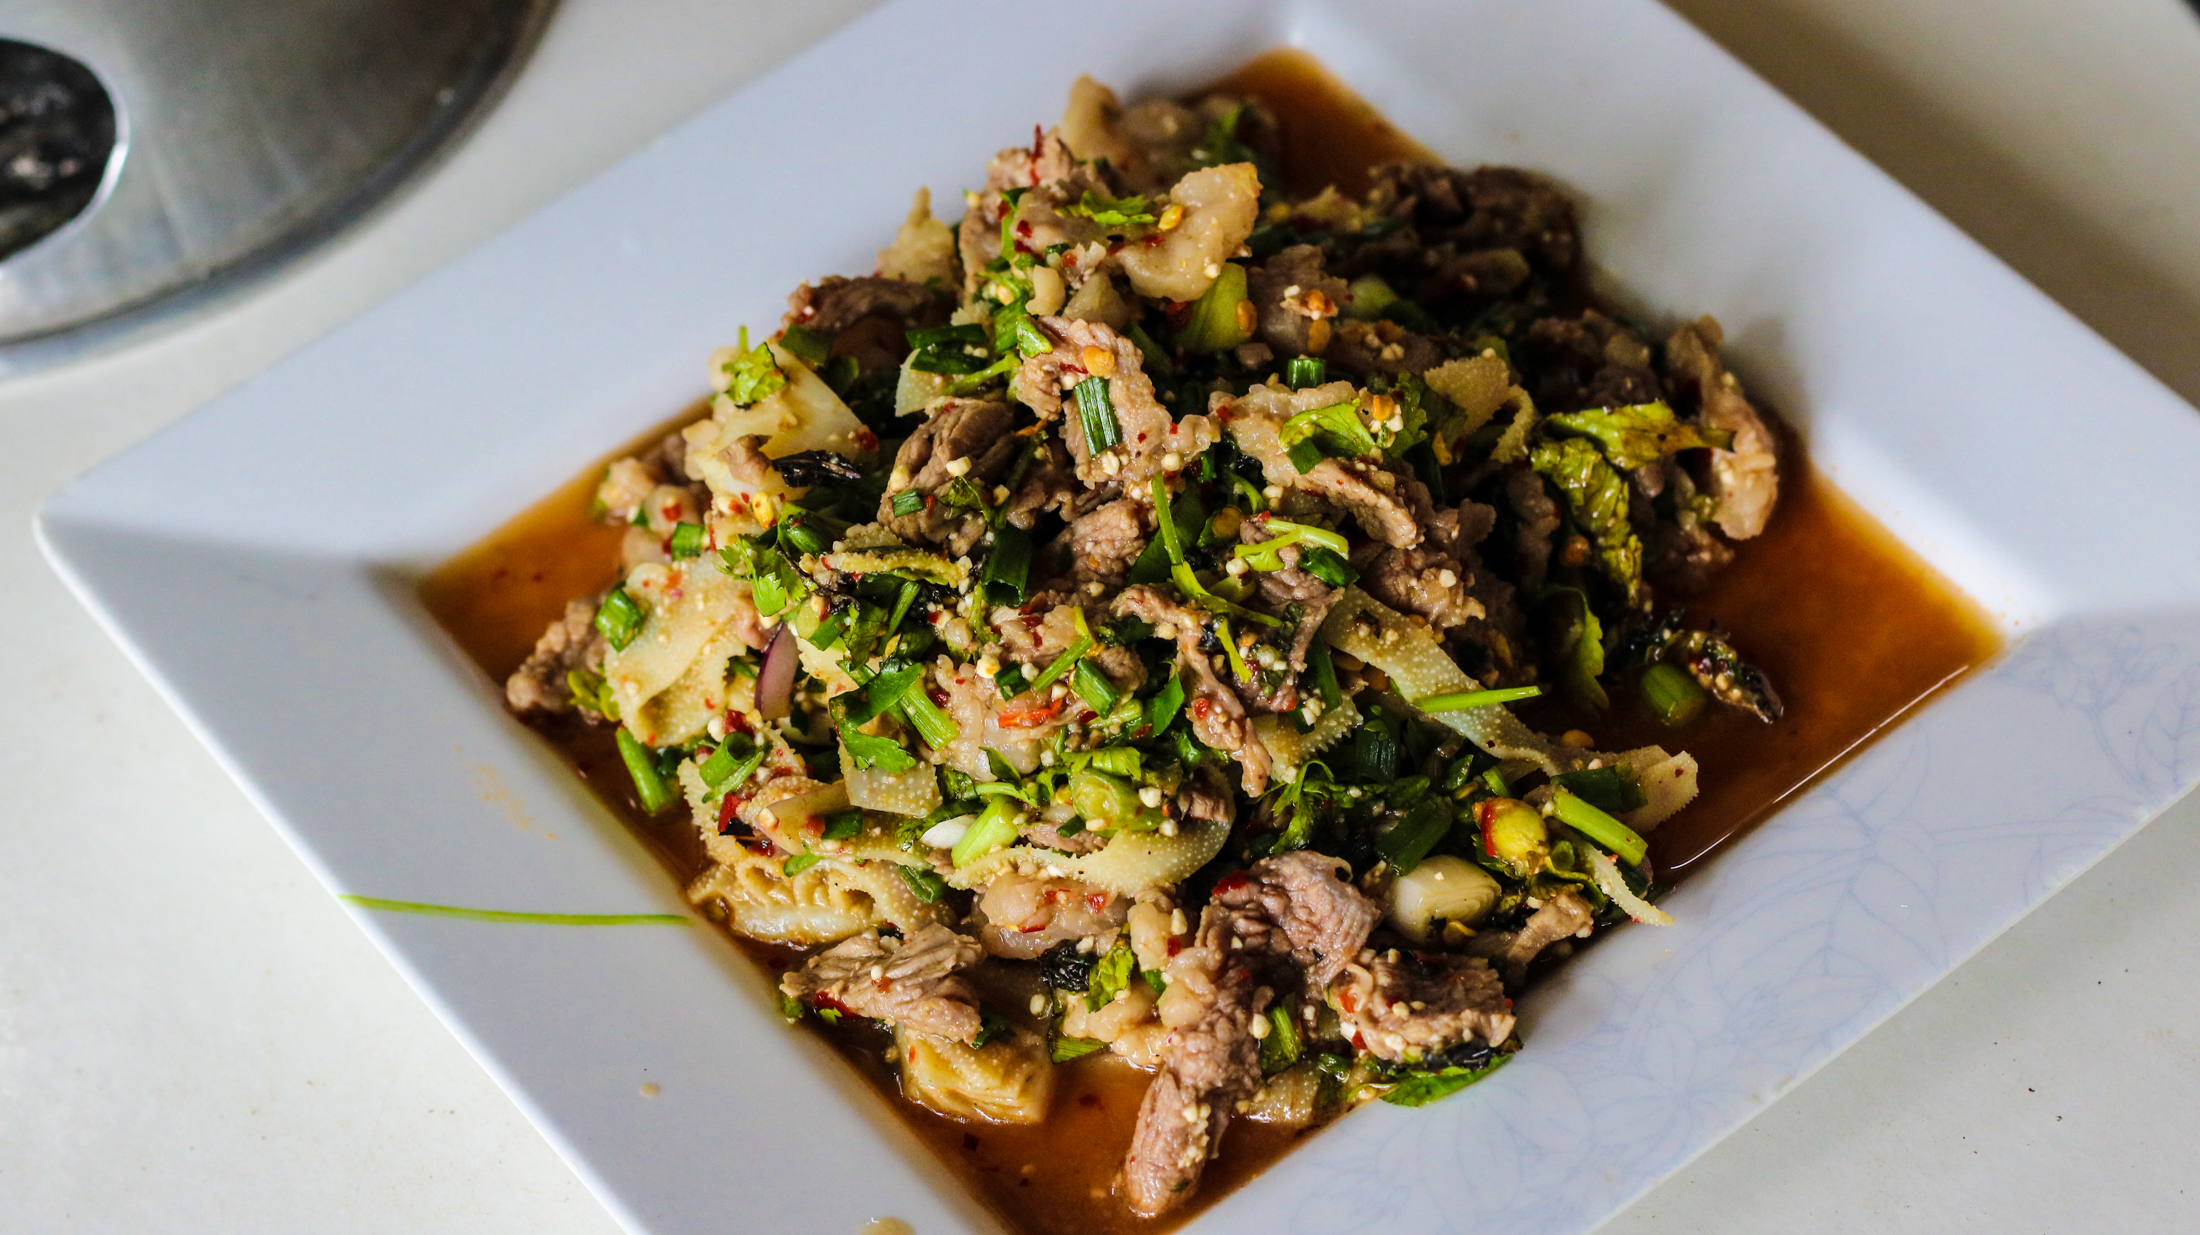 Amazing recipe of Laap today including fresh herbs, rice powder, and thin slices of reticulum, which is a cow stomach